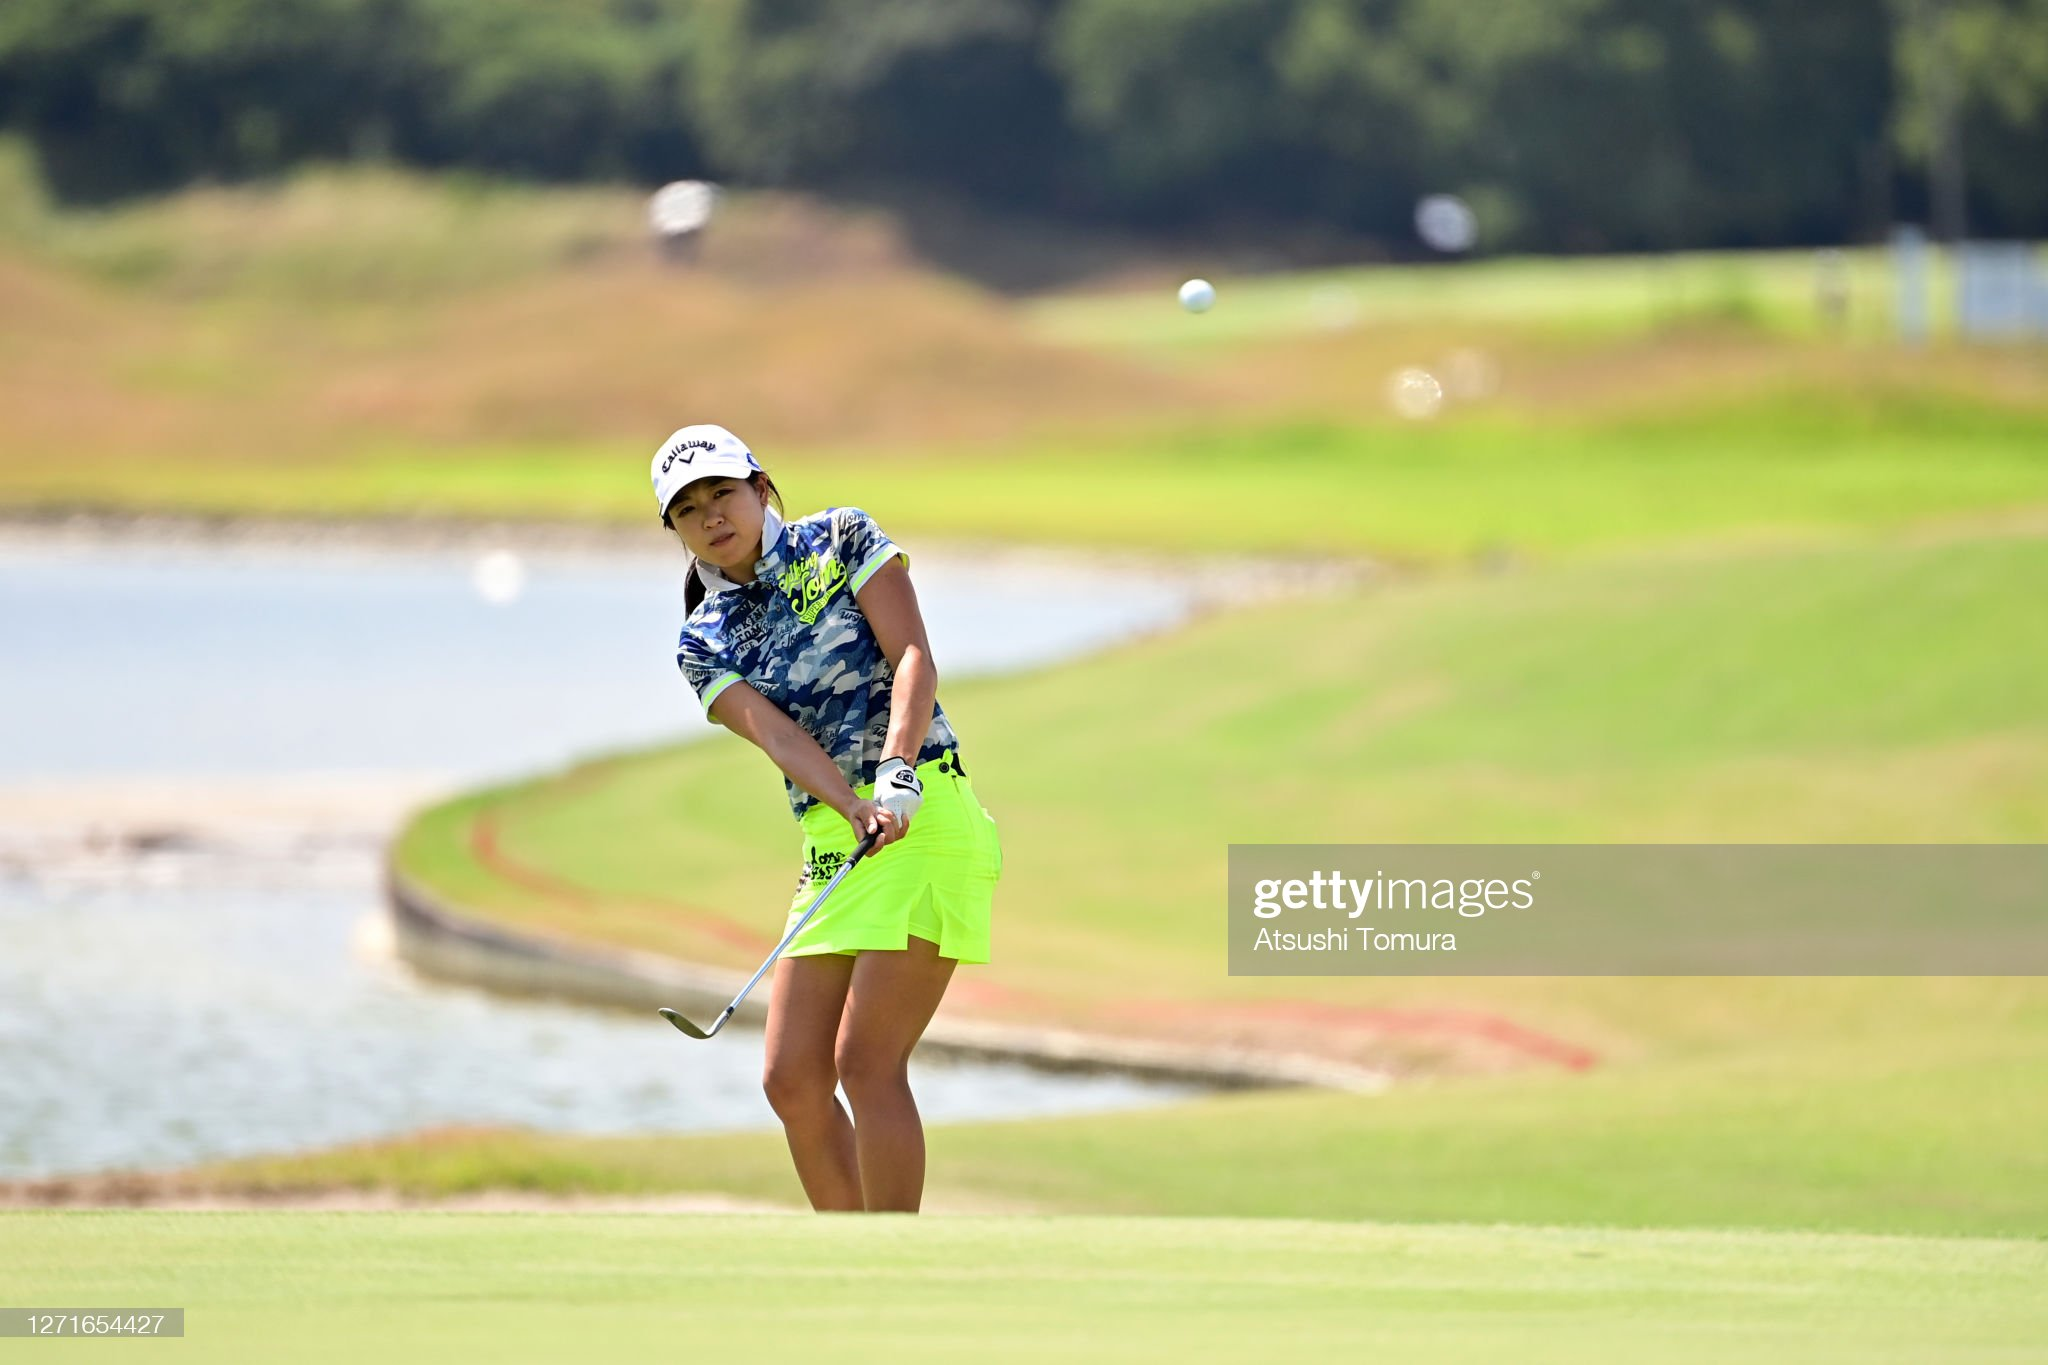 https://media.gettyimages.com/photos/solar-lee-of-chips-onto-the-9th-green-during-the-first-round-of-the-picture-id1271654427?s=2048x2048